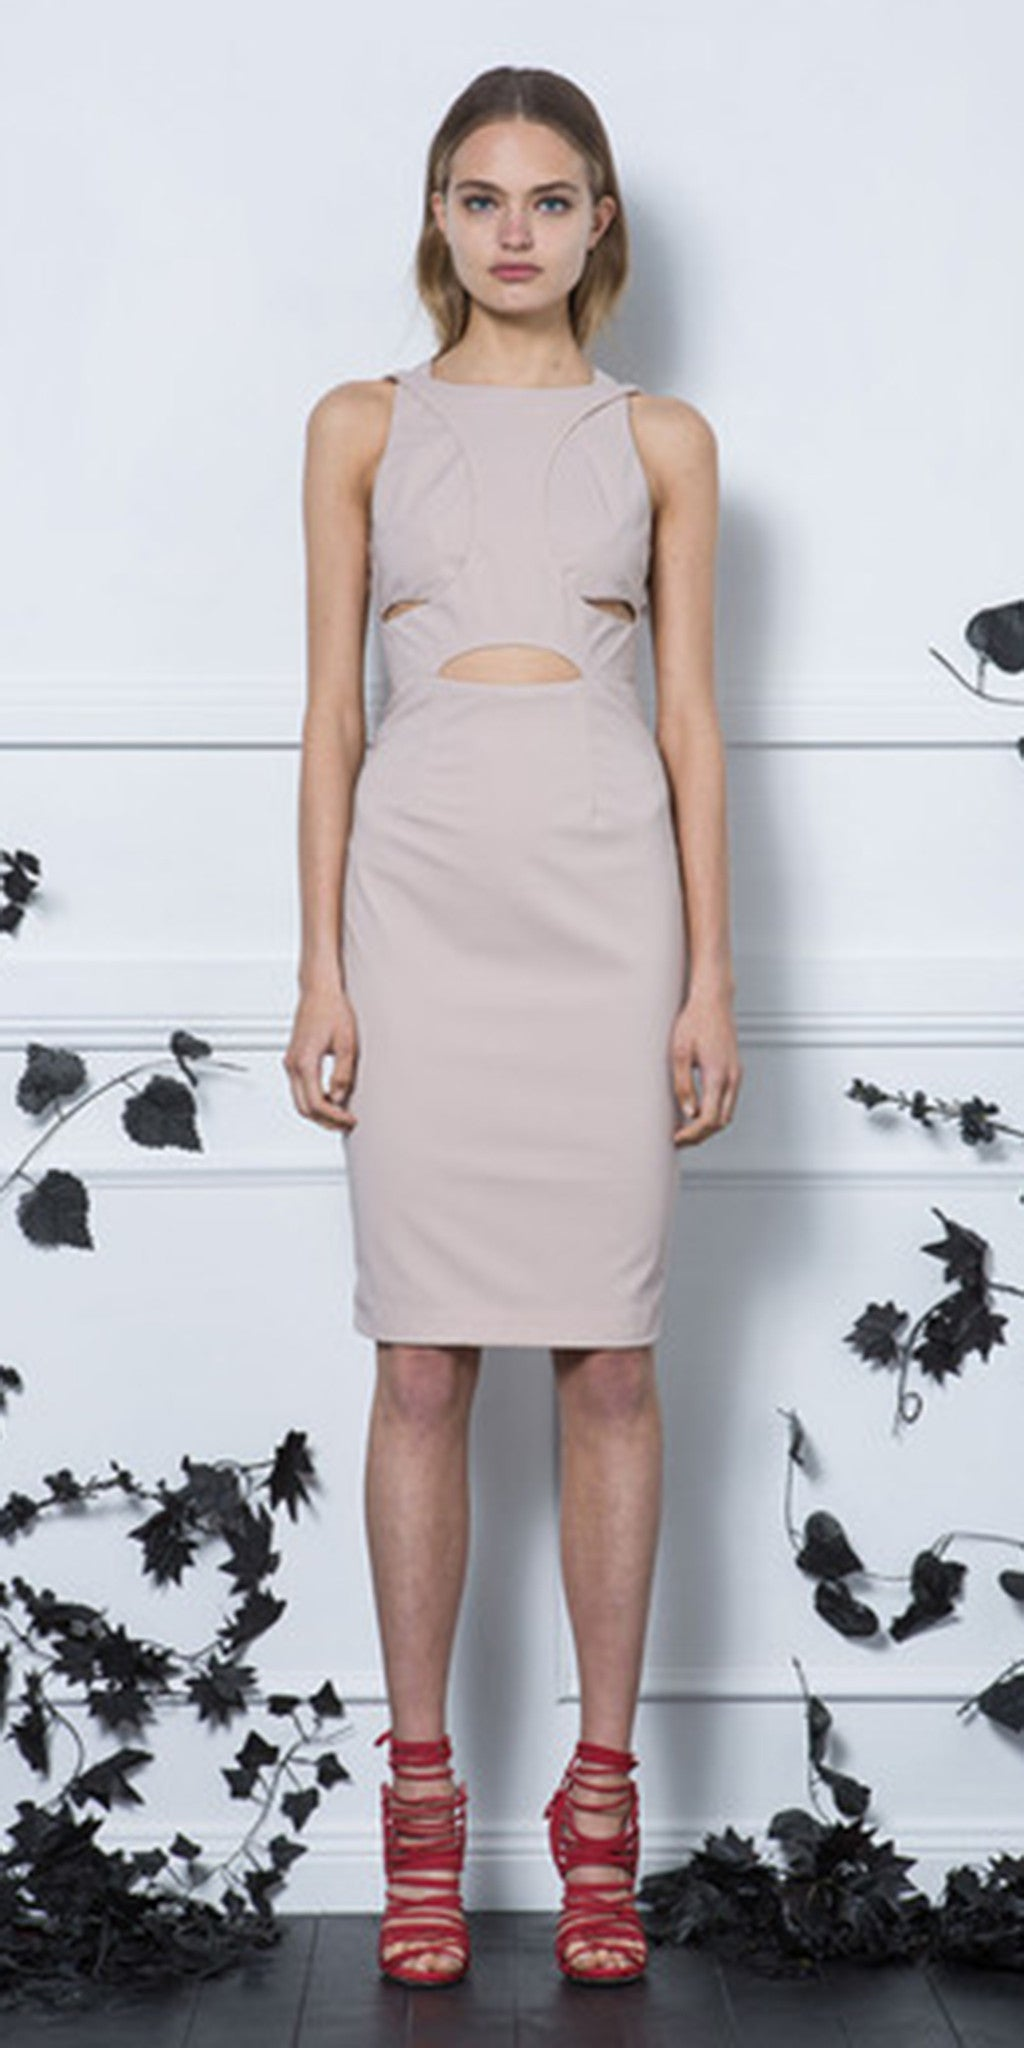 Ruled by Rules Dress - Nude